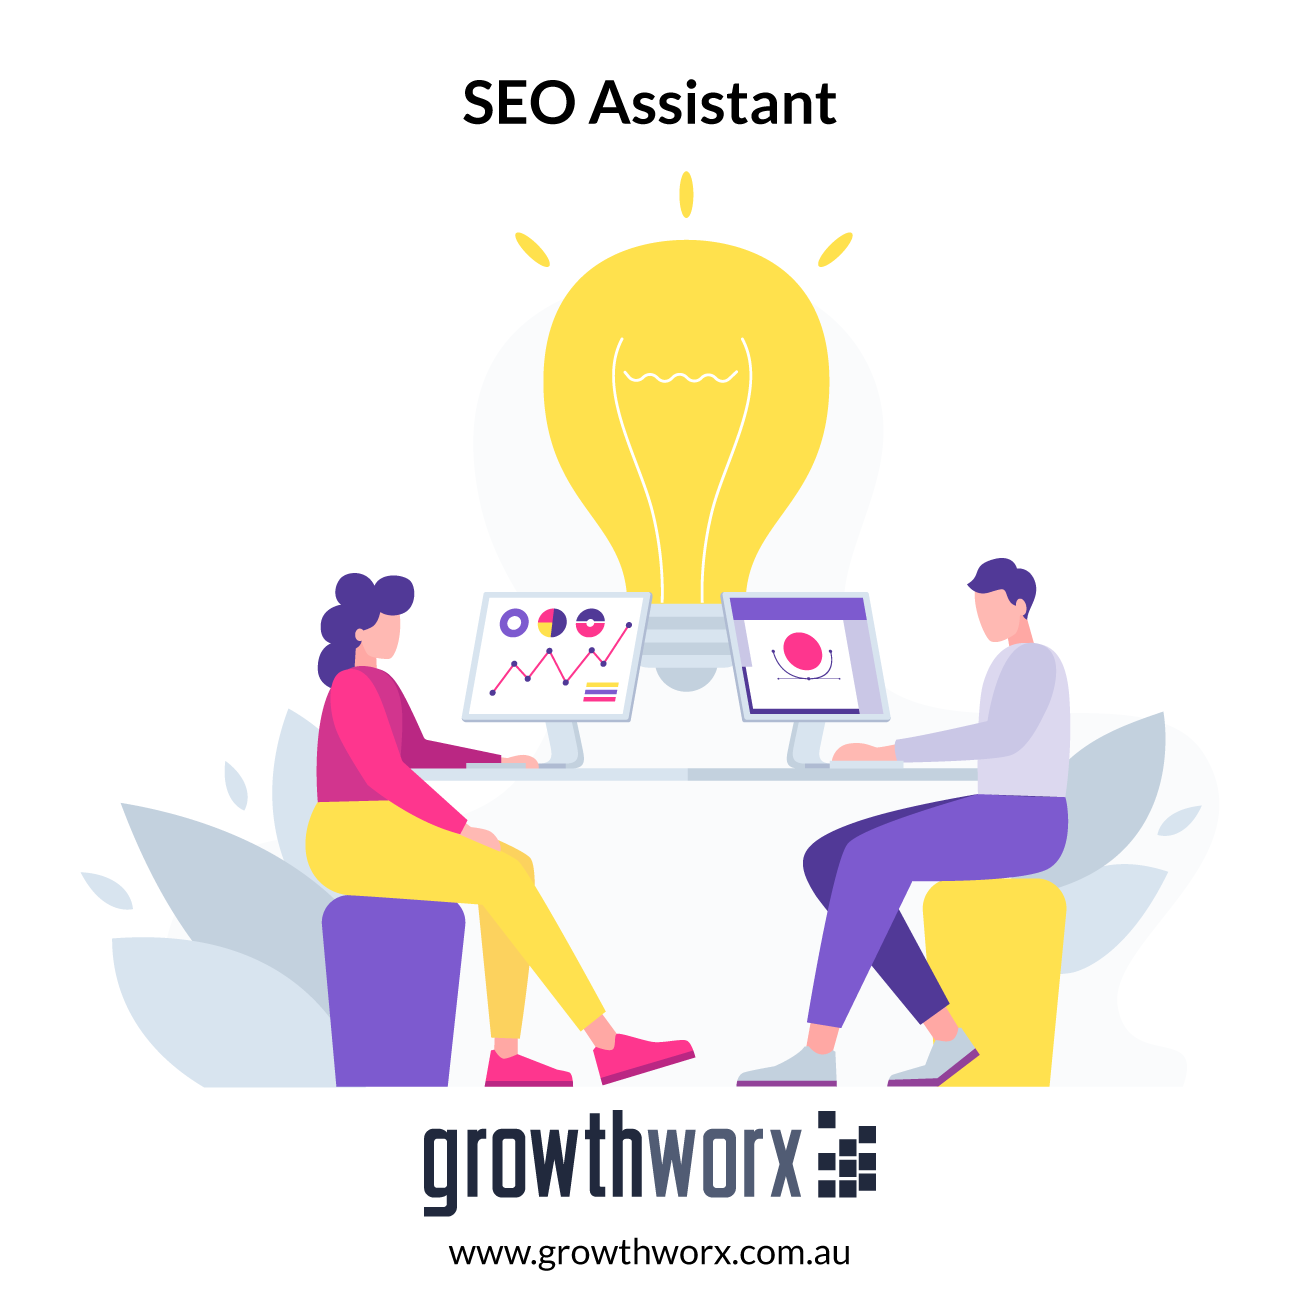 I will be your SEO assistant to promote your business and website 1